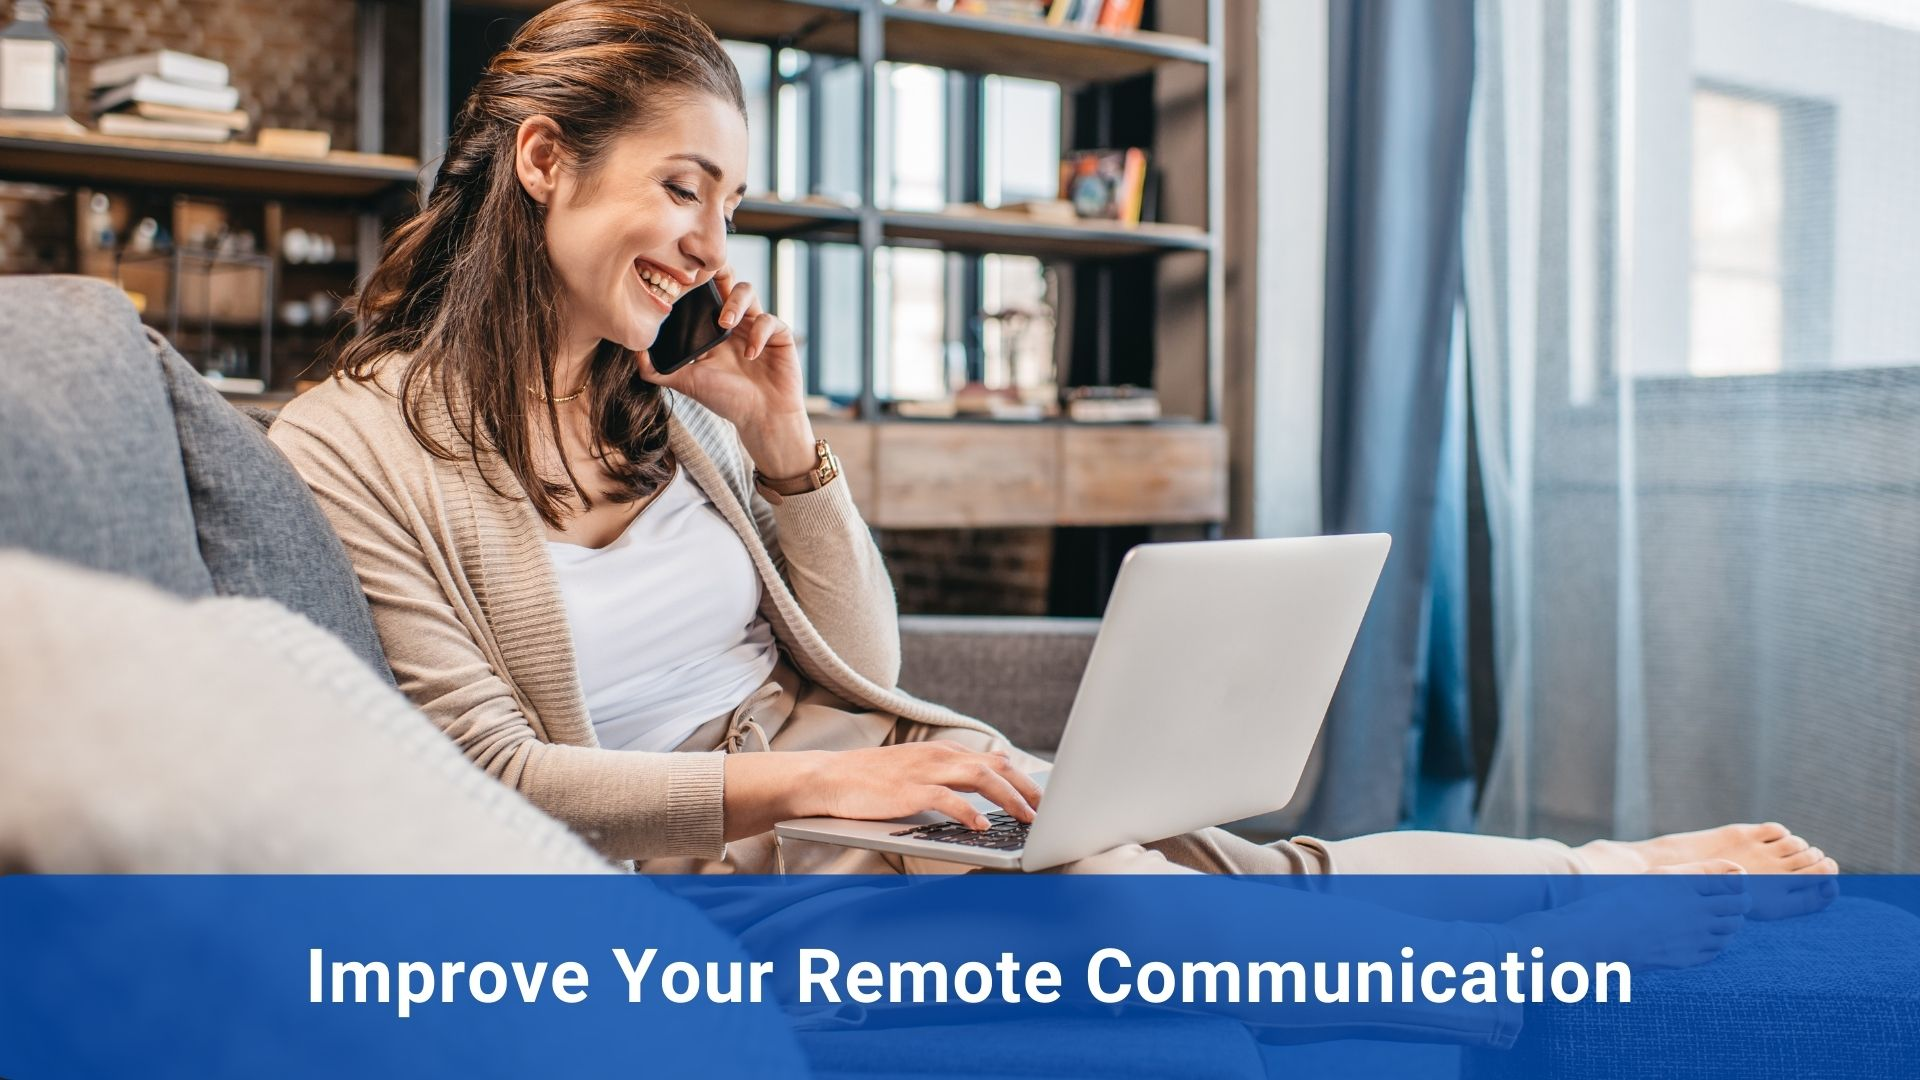 Remote communication tips